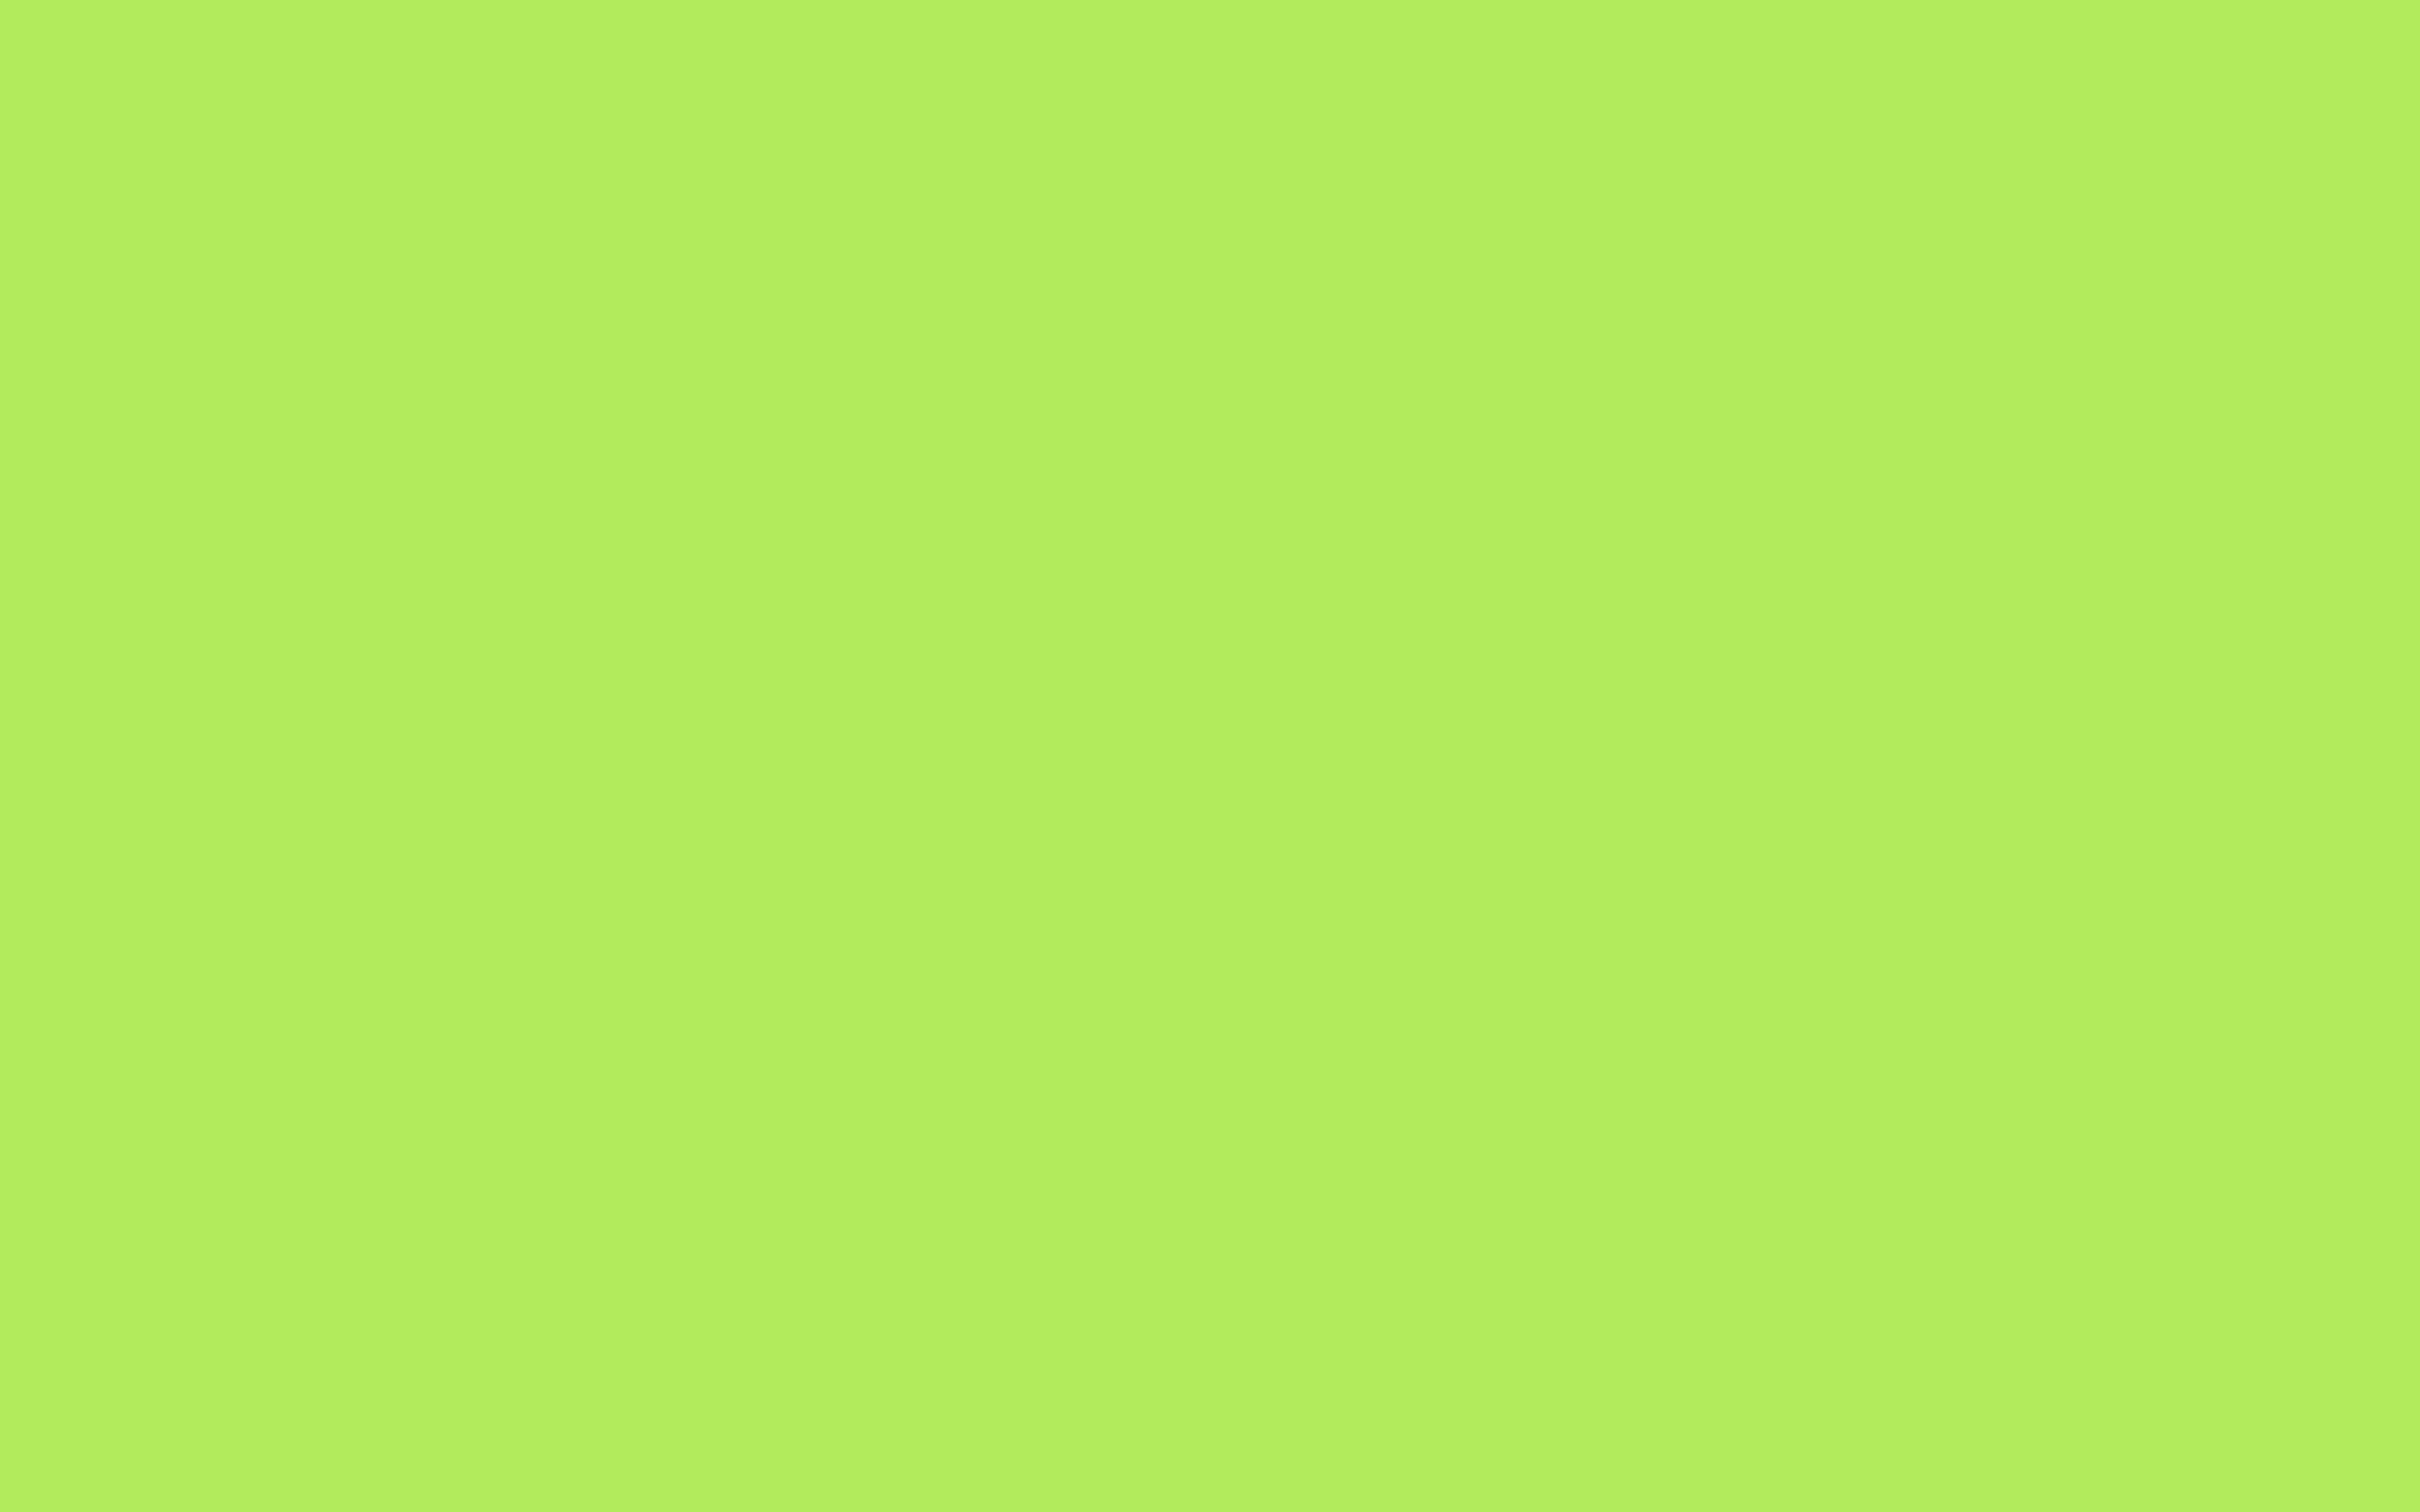 2880x1800 Inchworm Solid Color Background